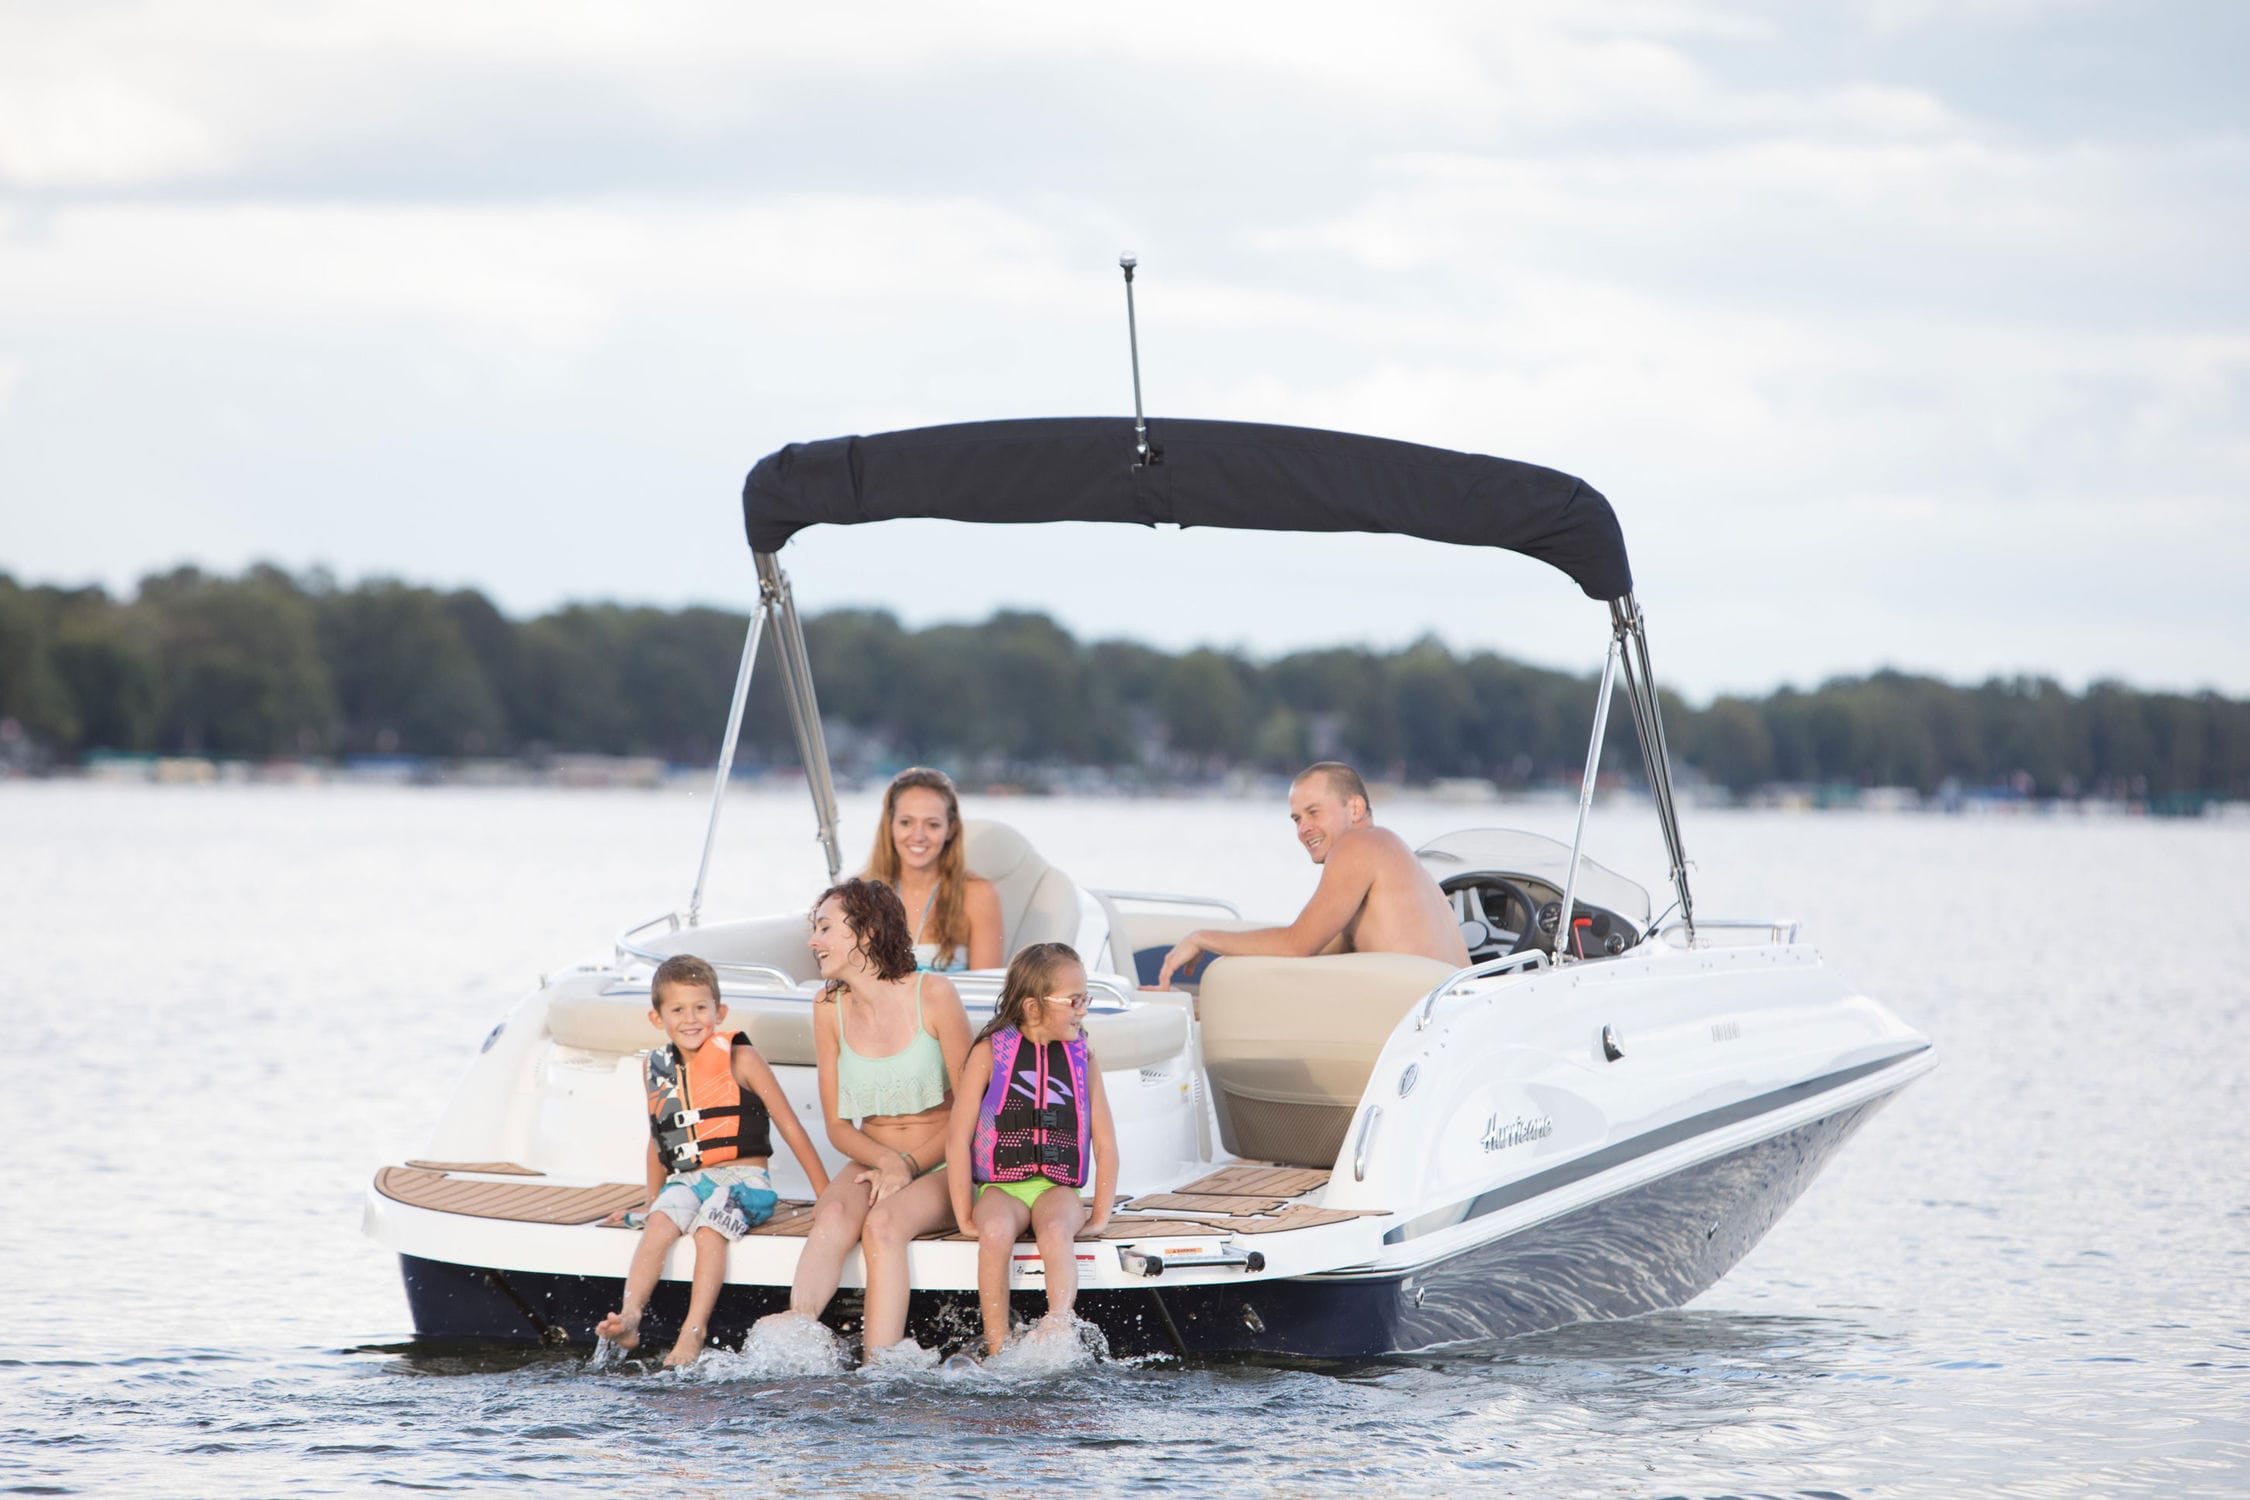 Inboard deck boat / wakeboard / 12-person max  / sundeck